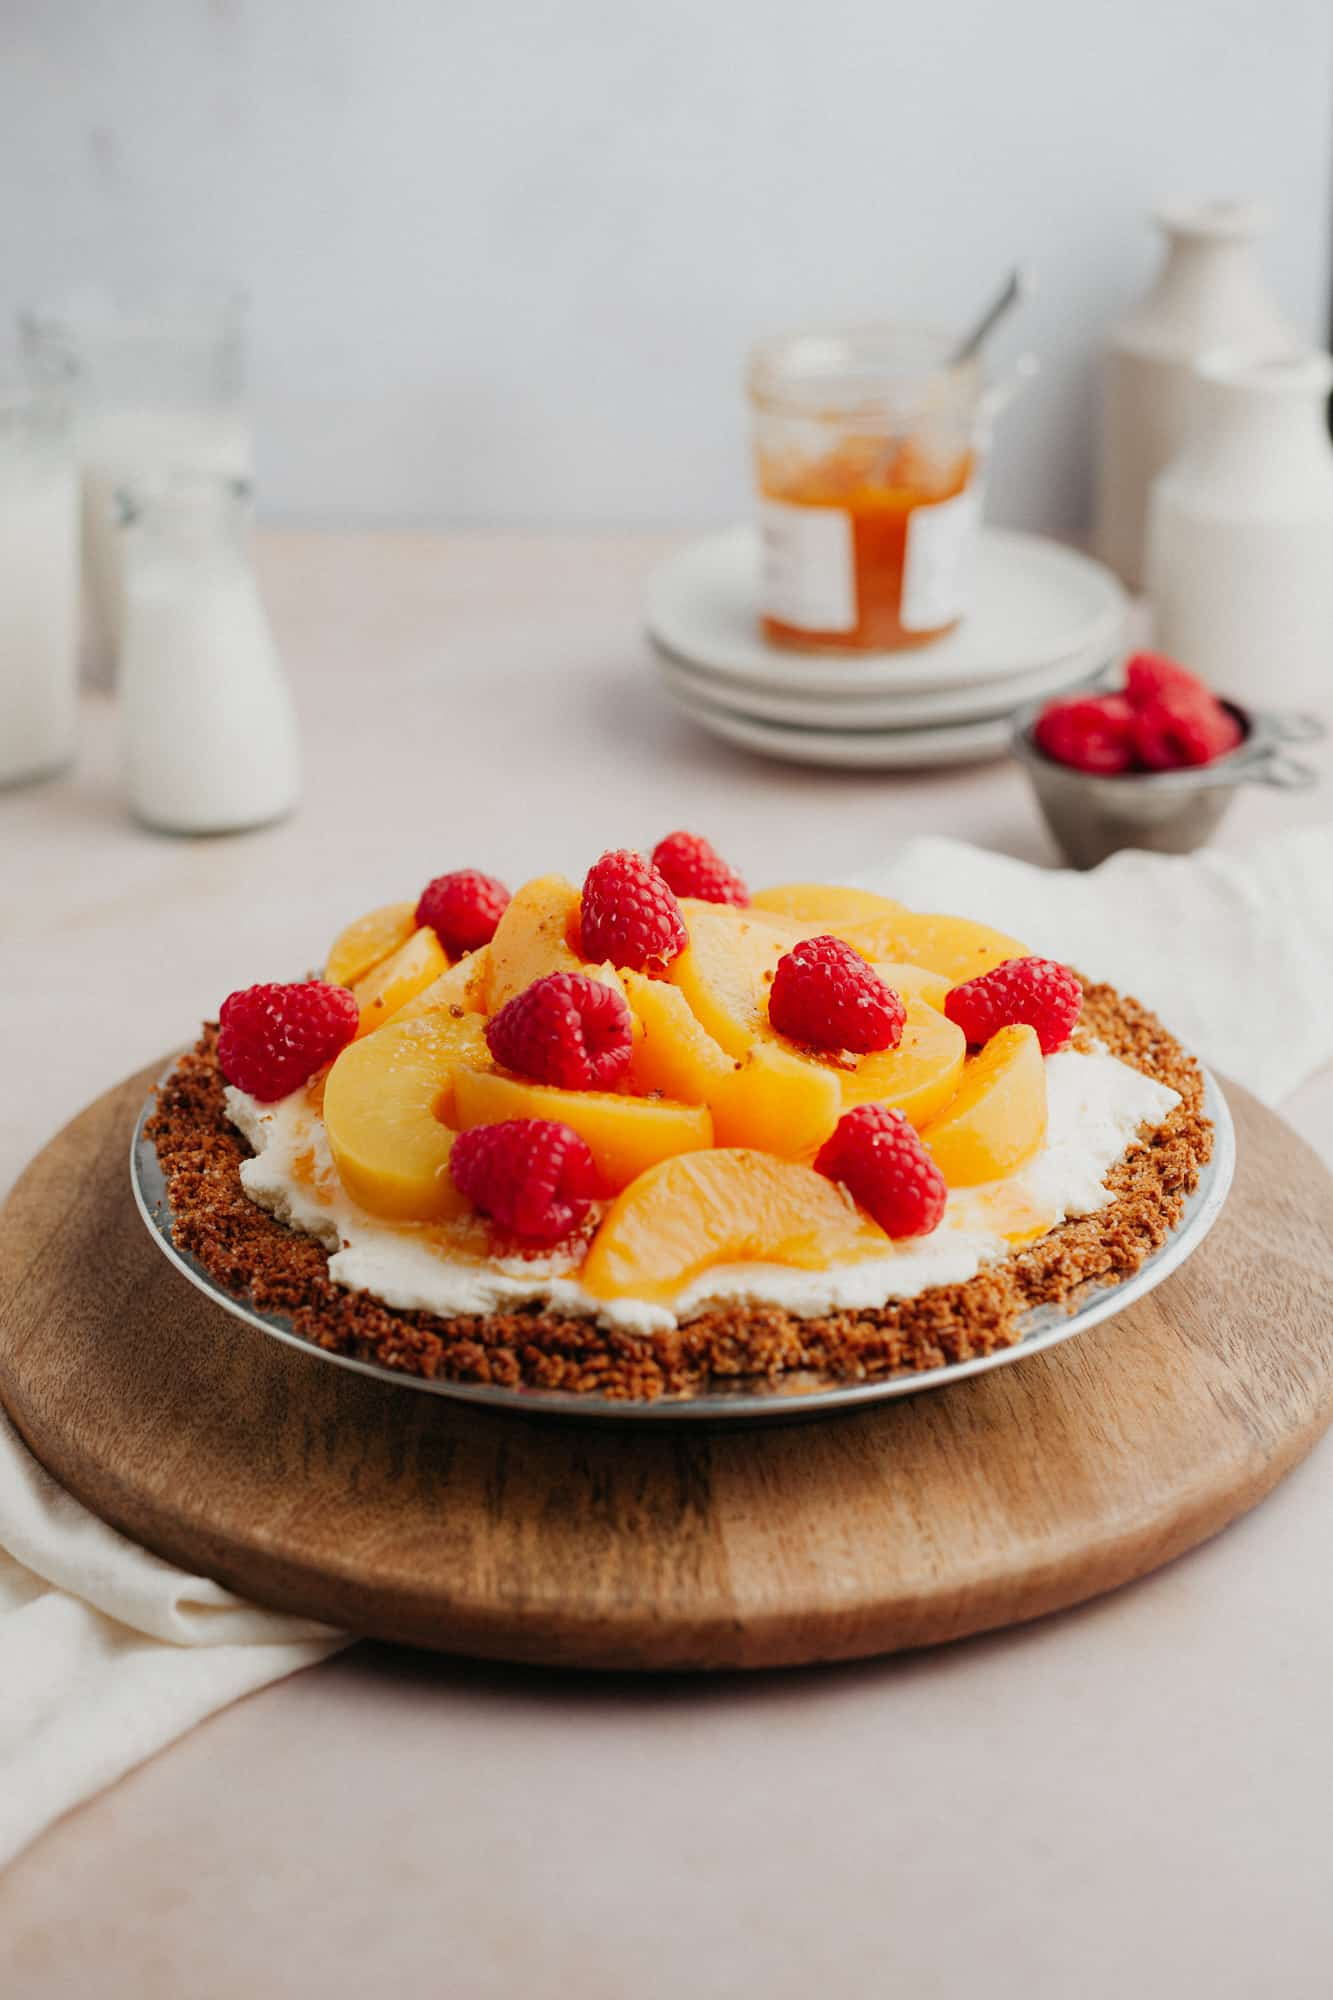 A no bake peach pie in a graham cracker crust, topped with sliced peached and raspberries. The pie plate is on a wooden circular board.